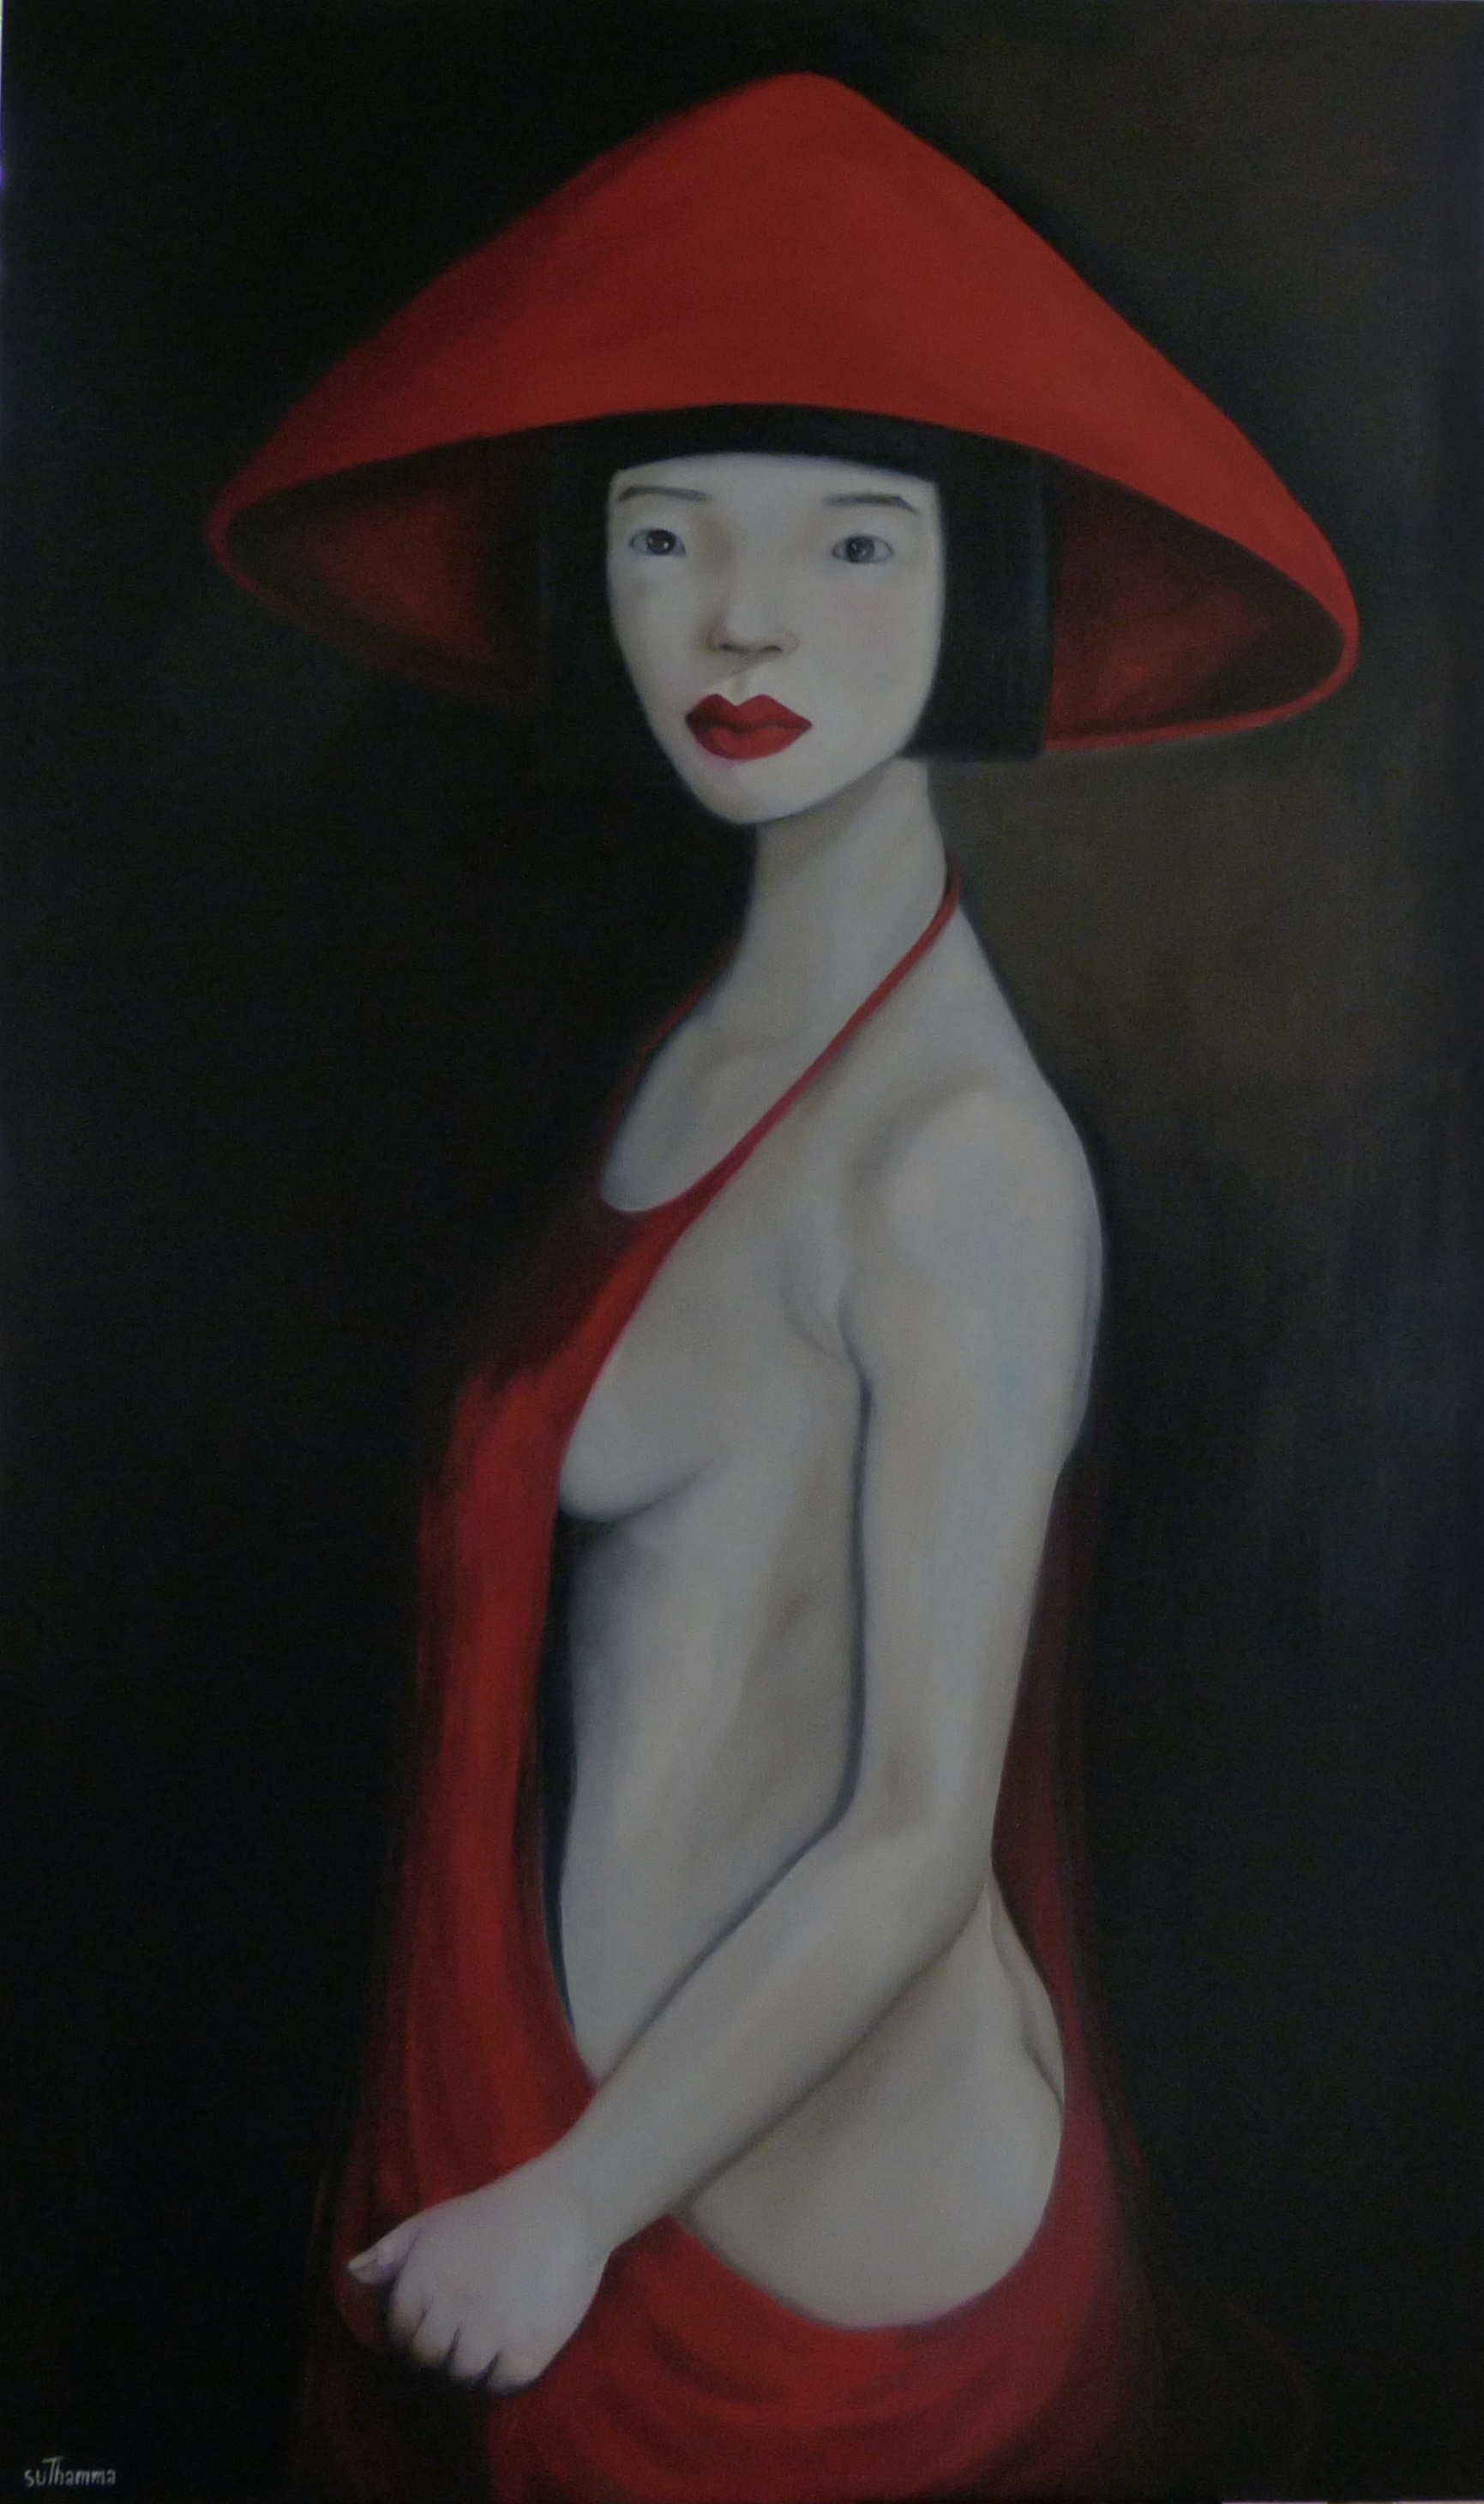 Oriental lady wearing a red hat and dress